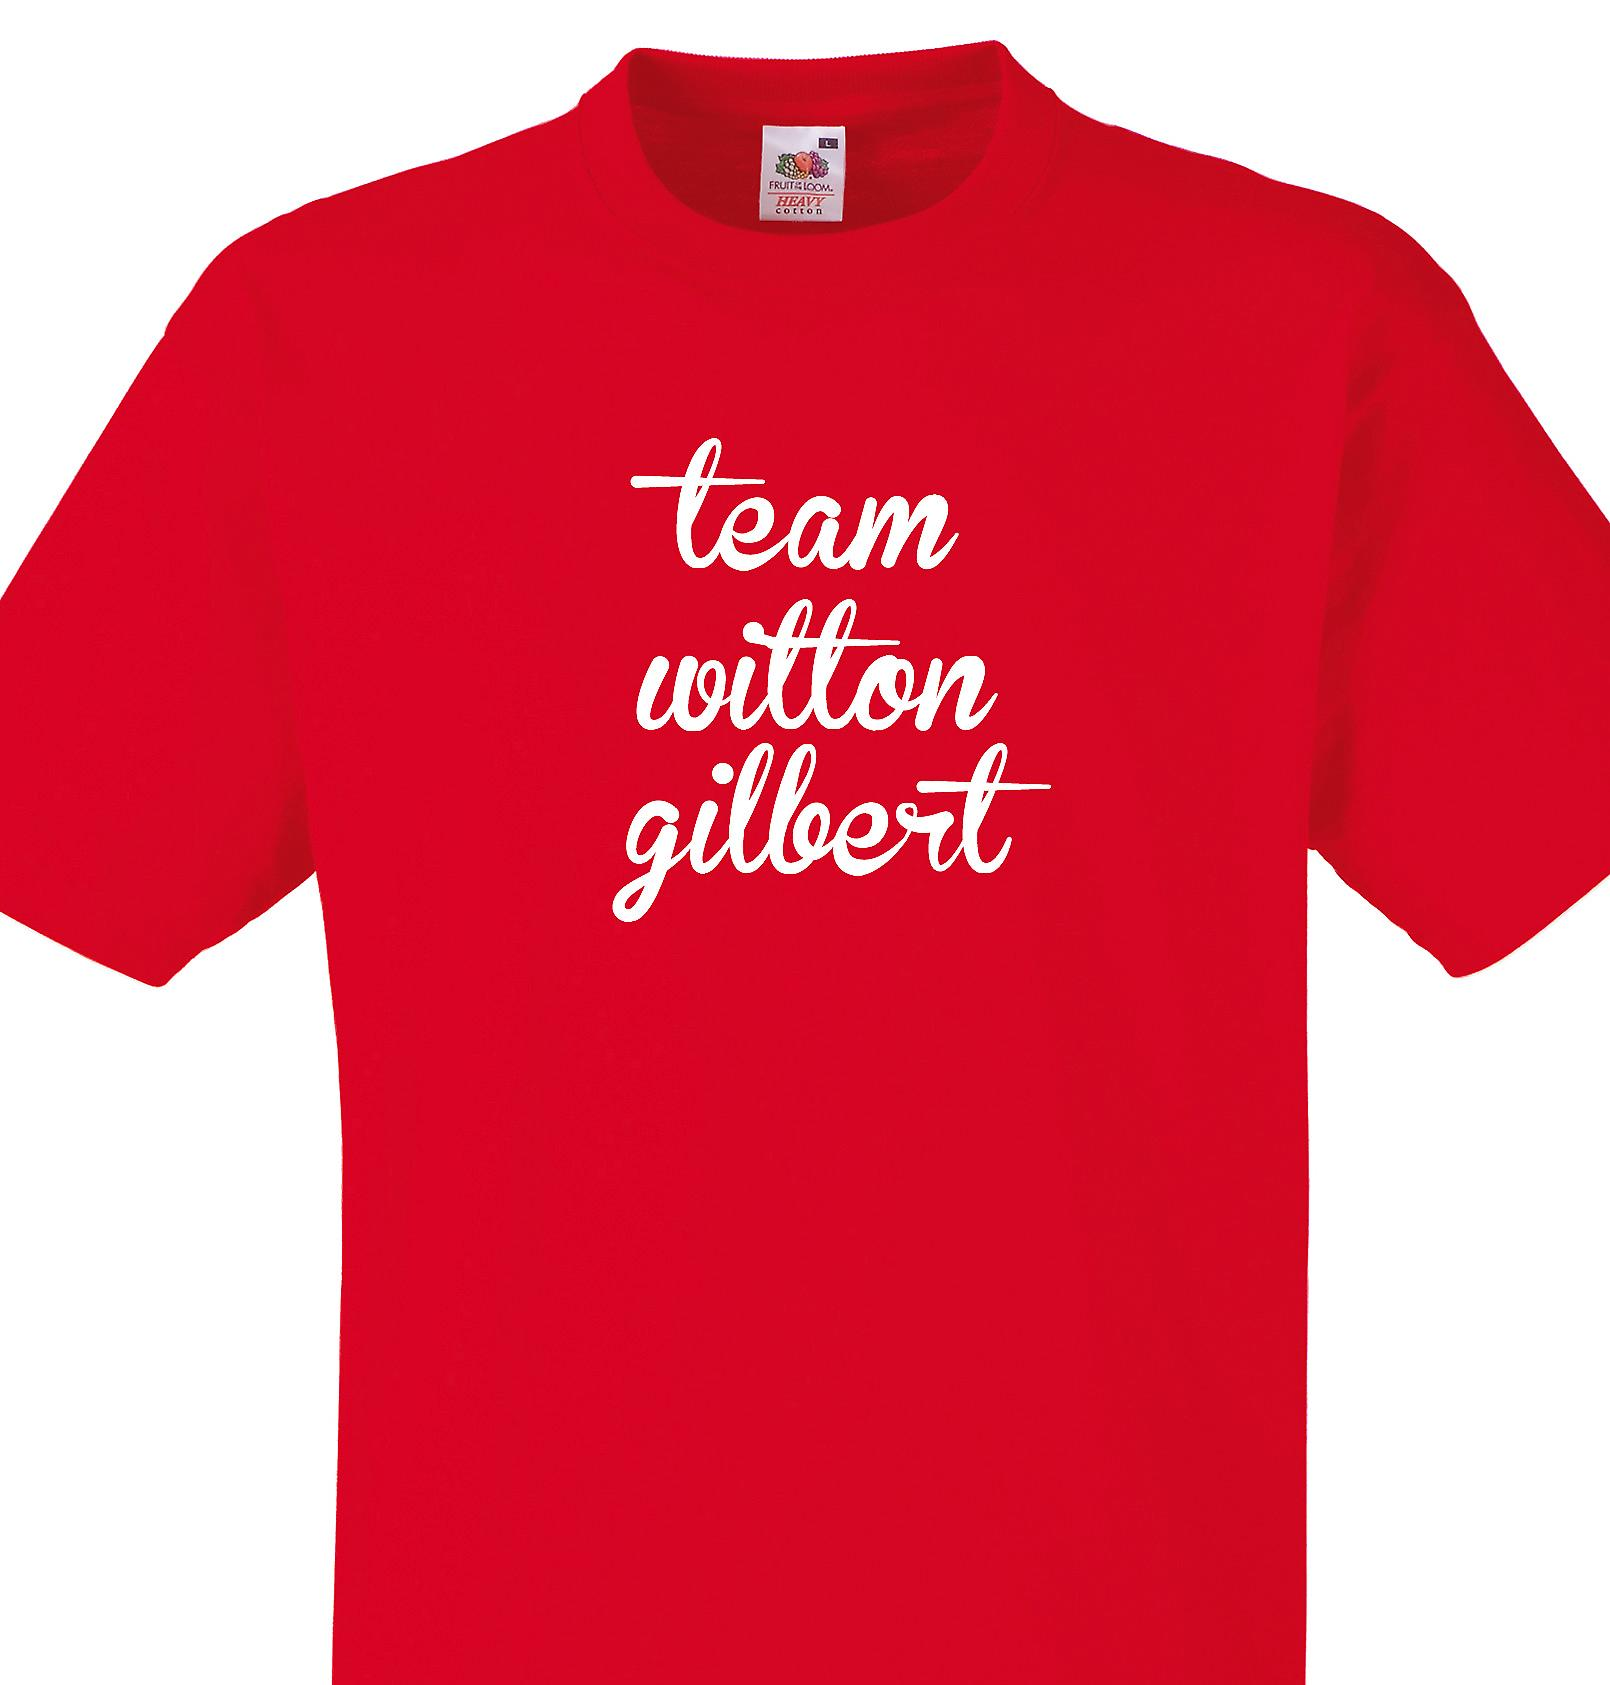 Team Witton gilbert Red T shirt